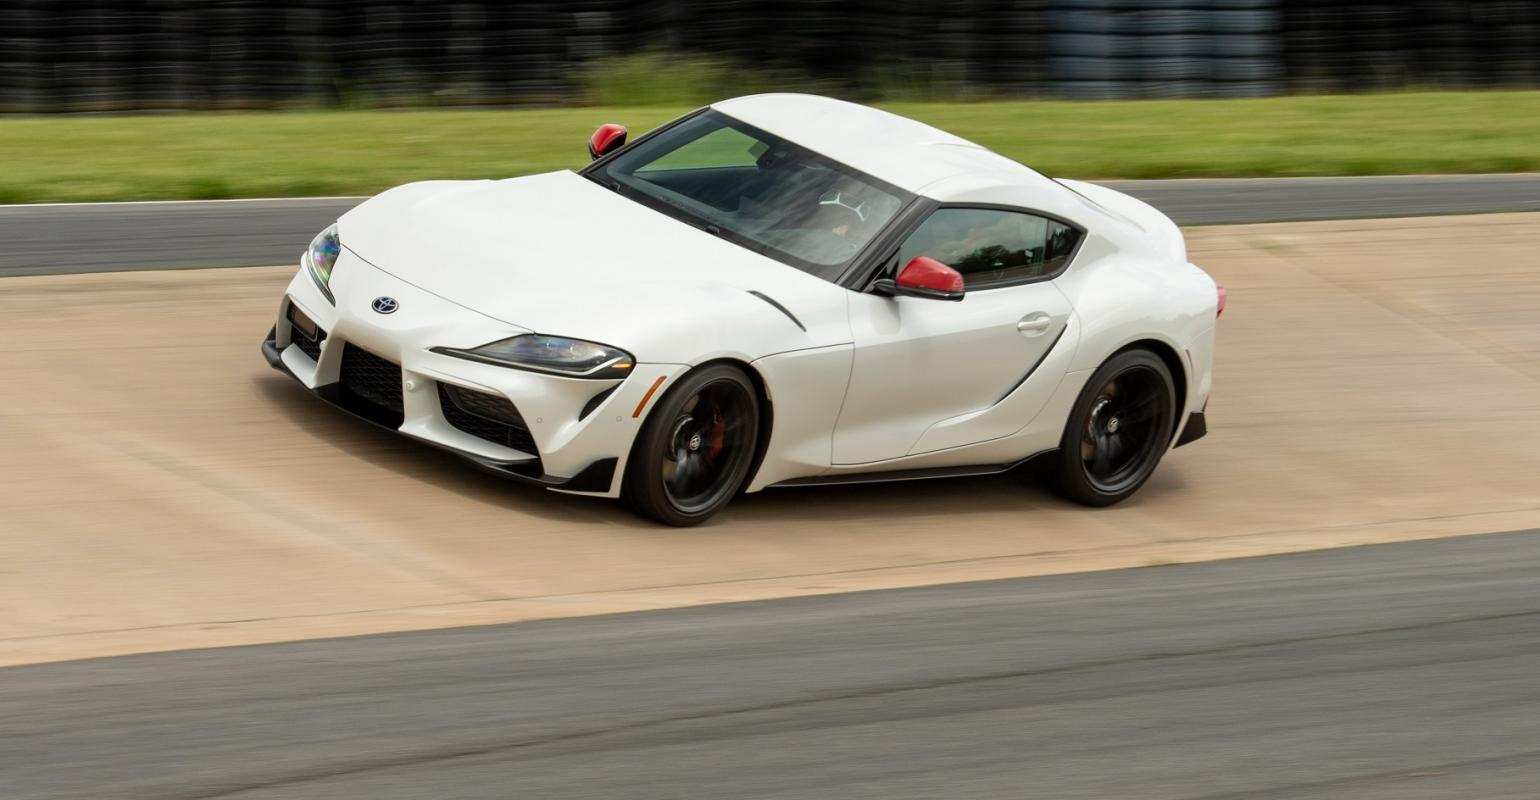 40 A Pictures Of The 2020 Toyota Supra Style